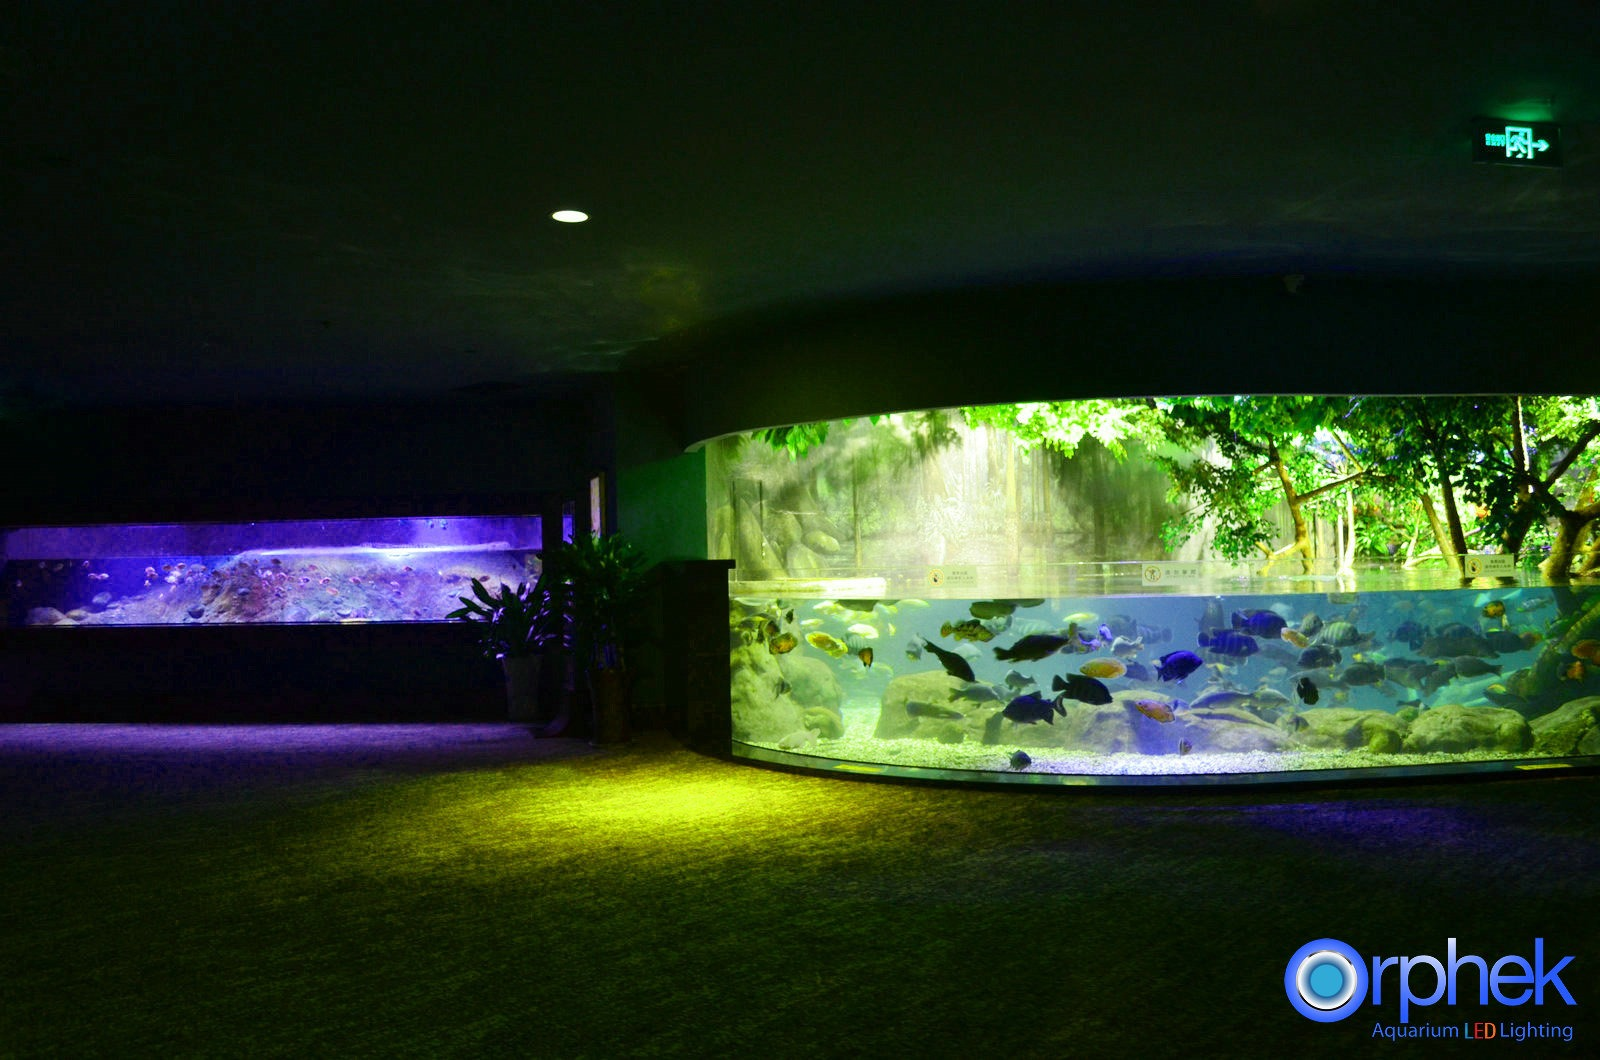 Amazon Eclairage Led Portfolio Orphek Aquarium éclairage Led